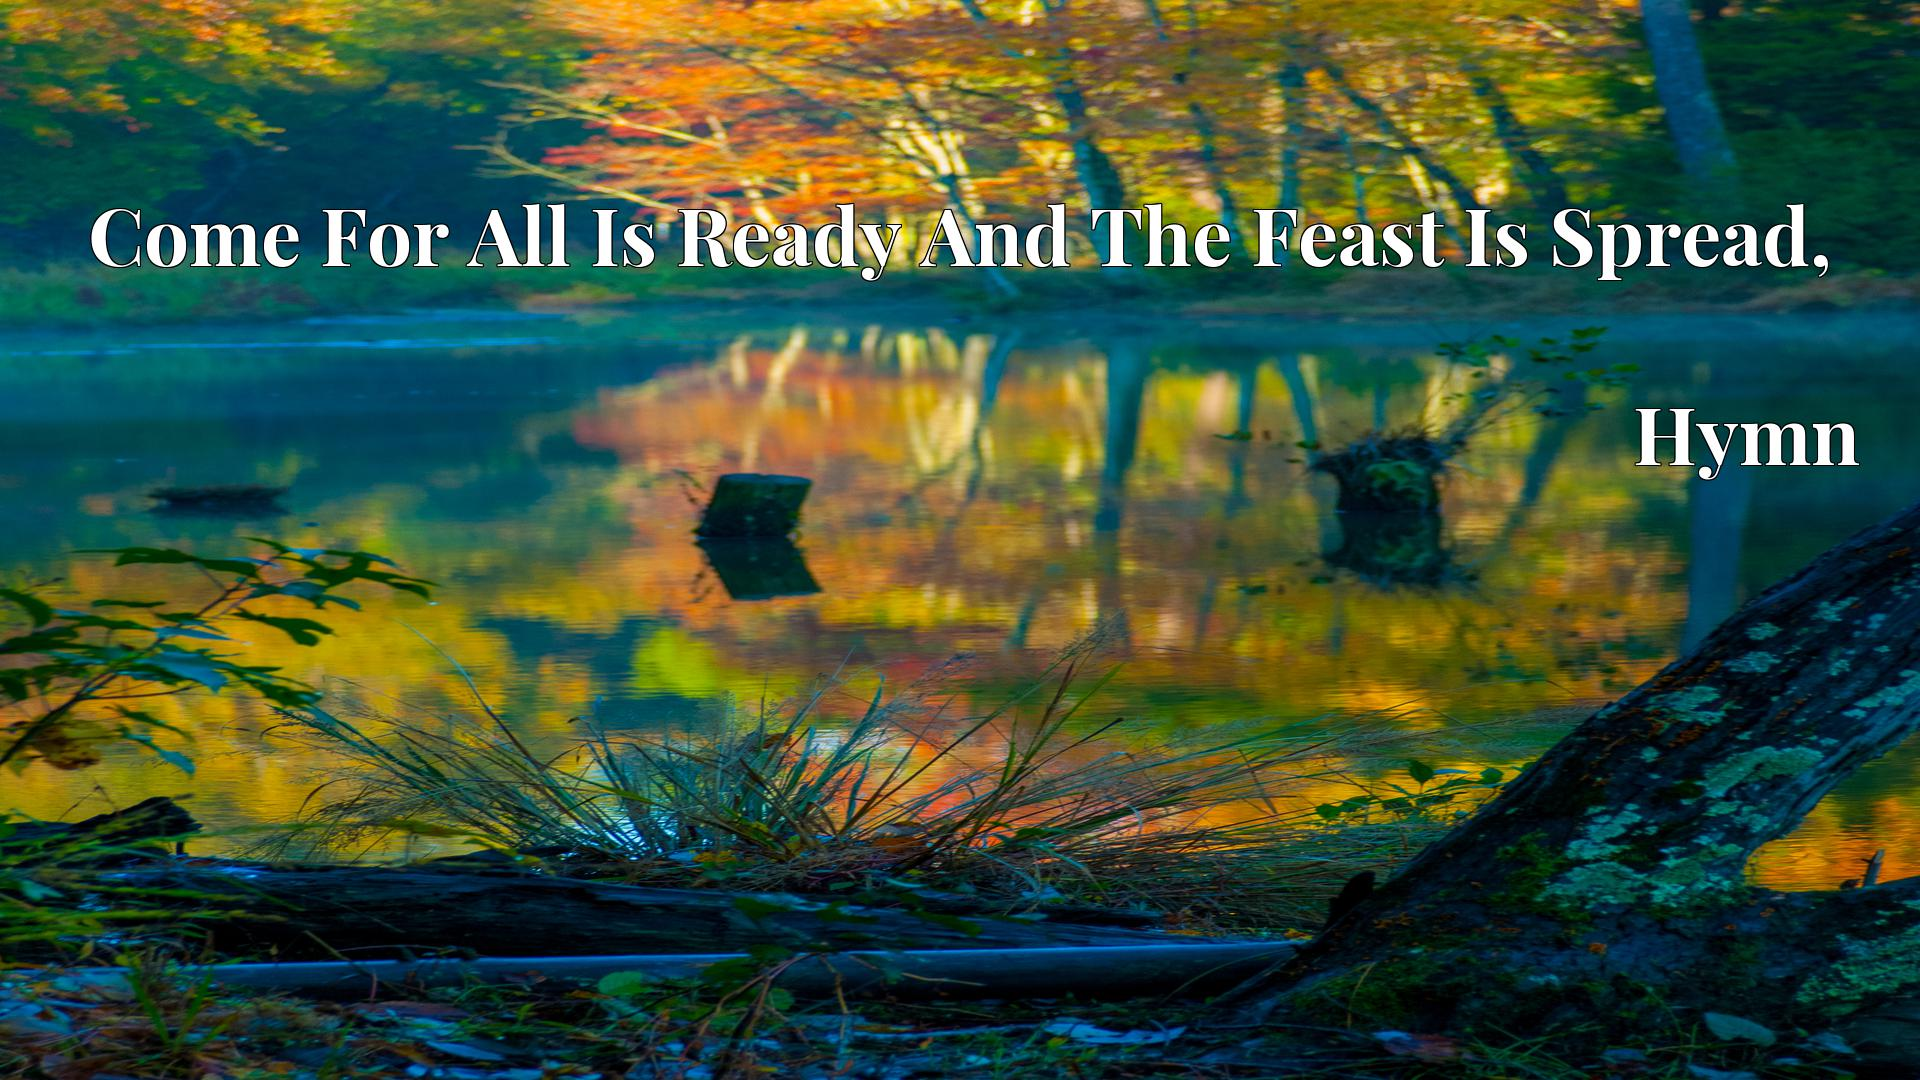 Come For All Is Ready And The Feast Is Spread, - Hymn